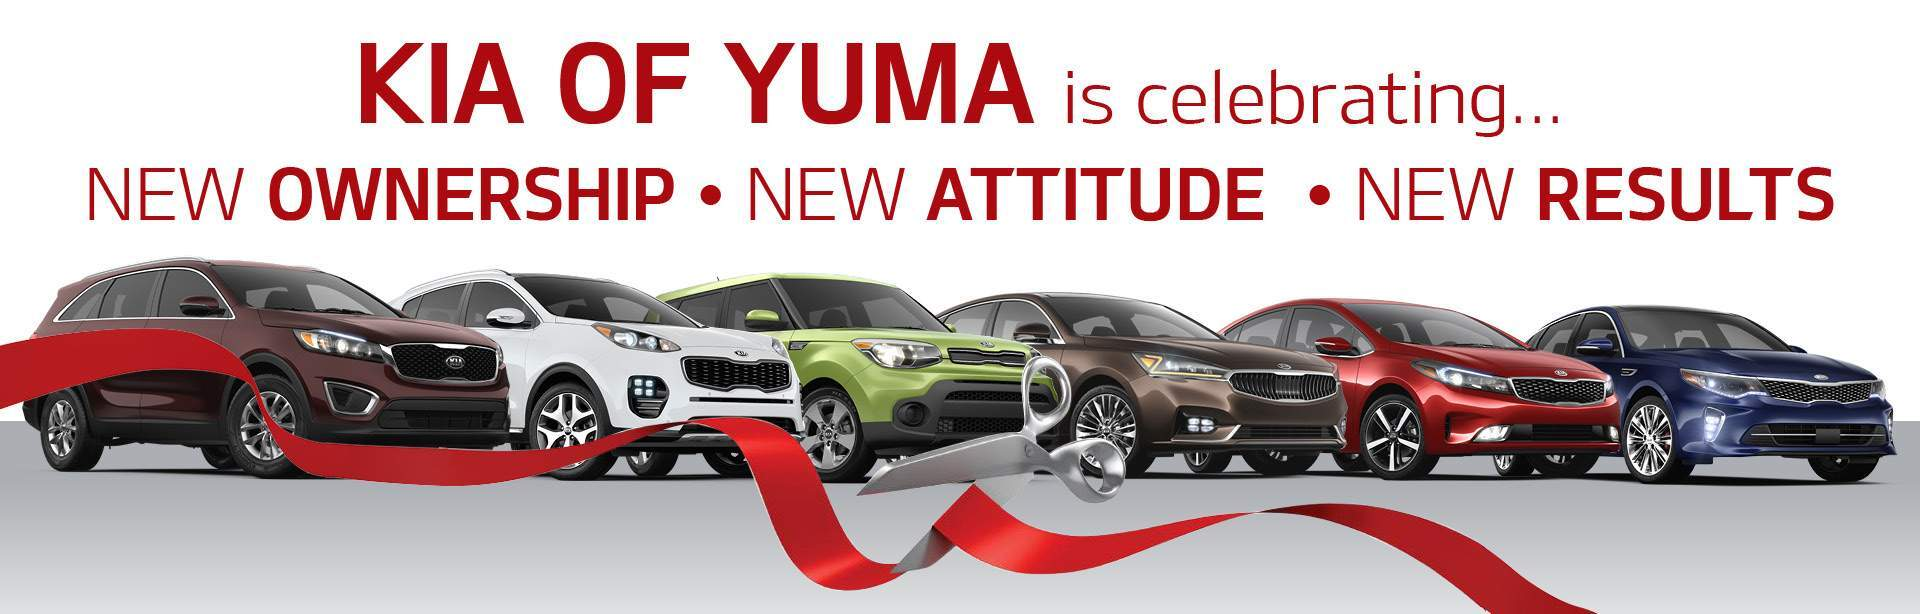 Kia of Yuma New Ownership